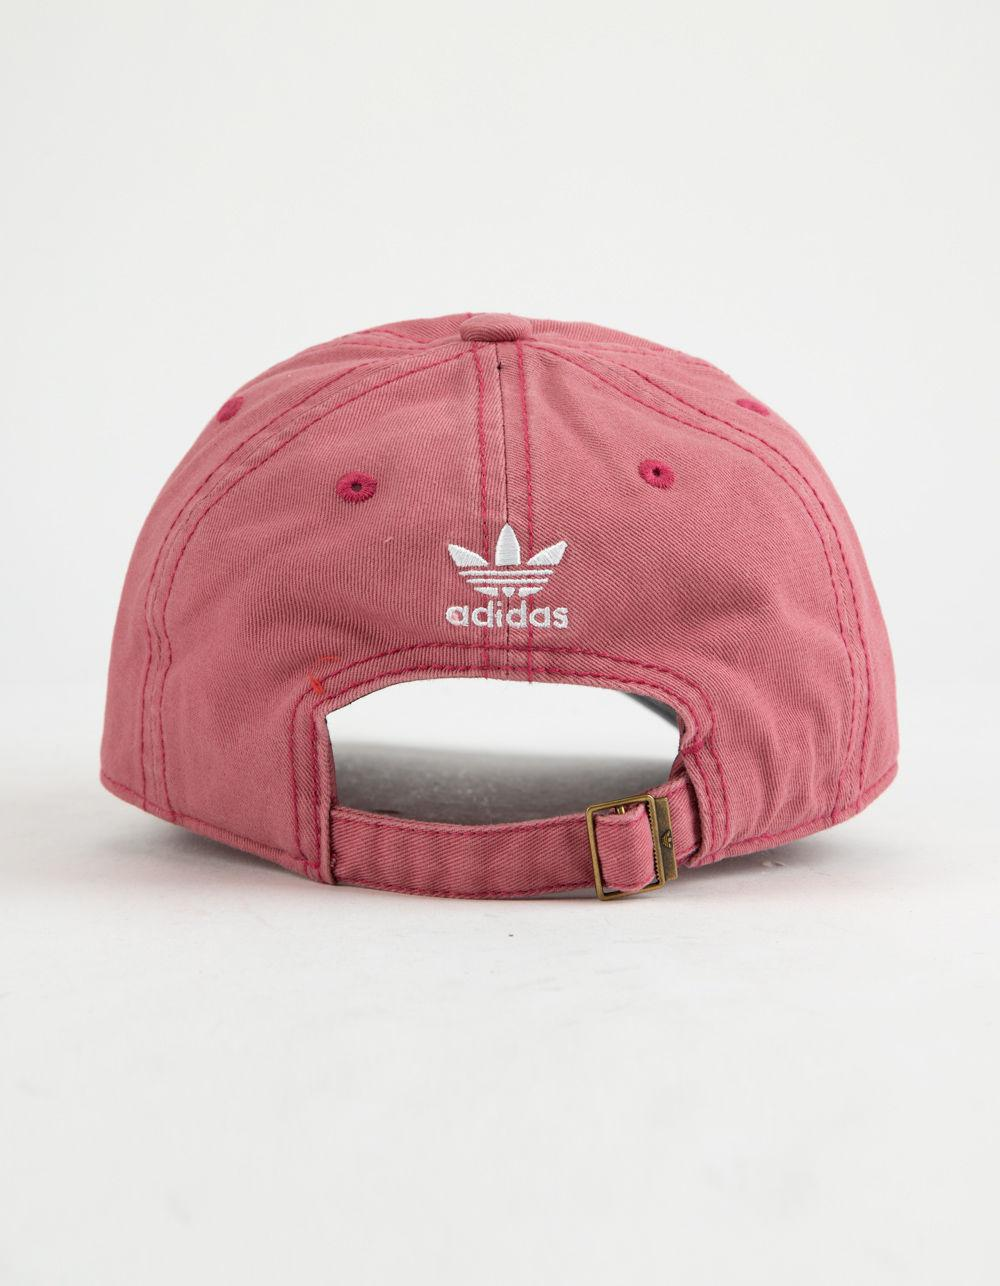 5f67d3d7b adidas Originals Relaxed Trace Maroon & White Womens Strapback Hat ...